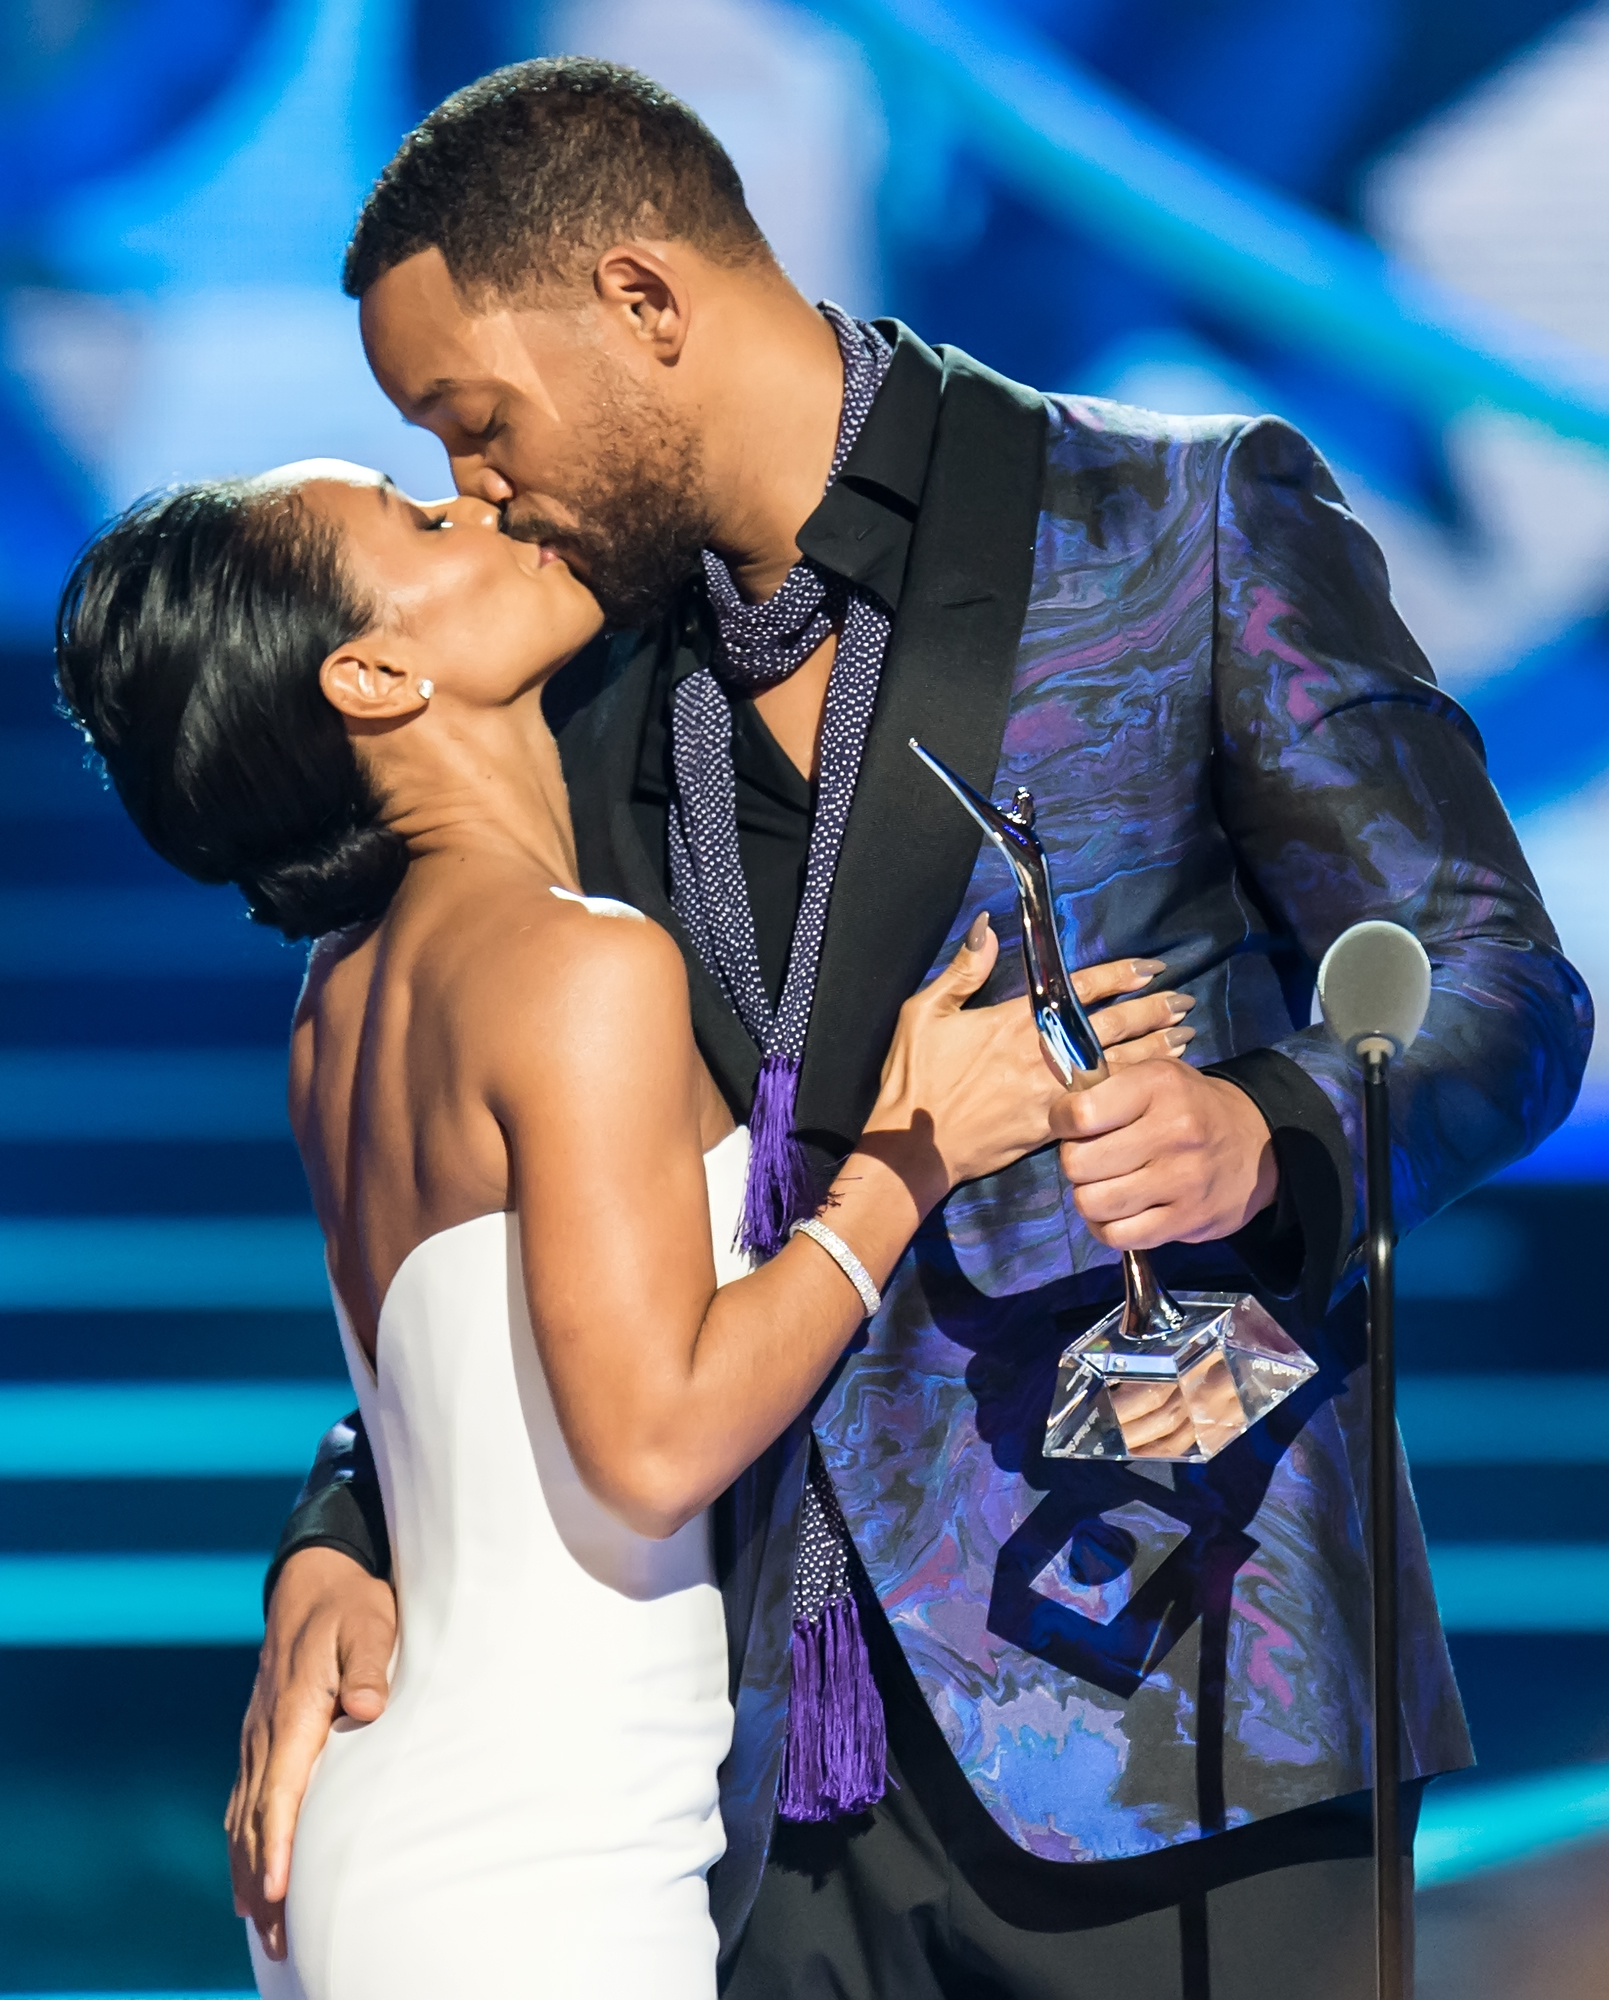 Actor Will Smith (R) presents his wife, actress Jada Pinkett Smith with the Star Power award  onstage during 2015 'Black Girls Rock!' BET Special at NJ Performing Arts Center on March 28, 2015 in Newark, New Jersey.